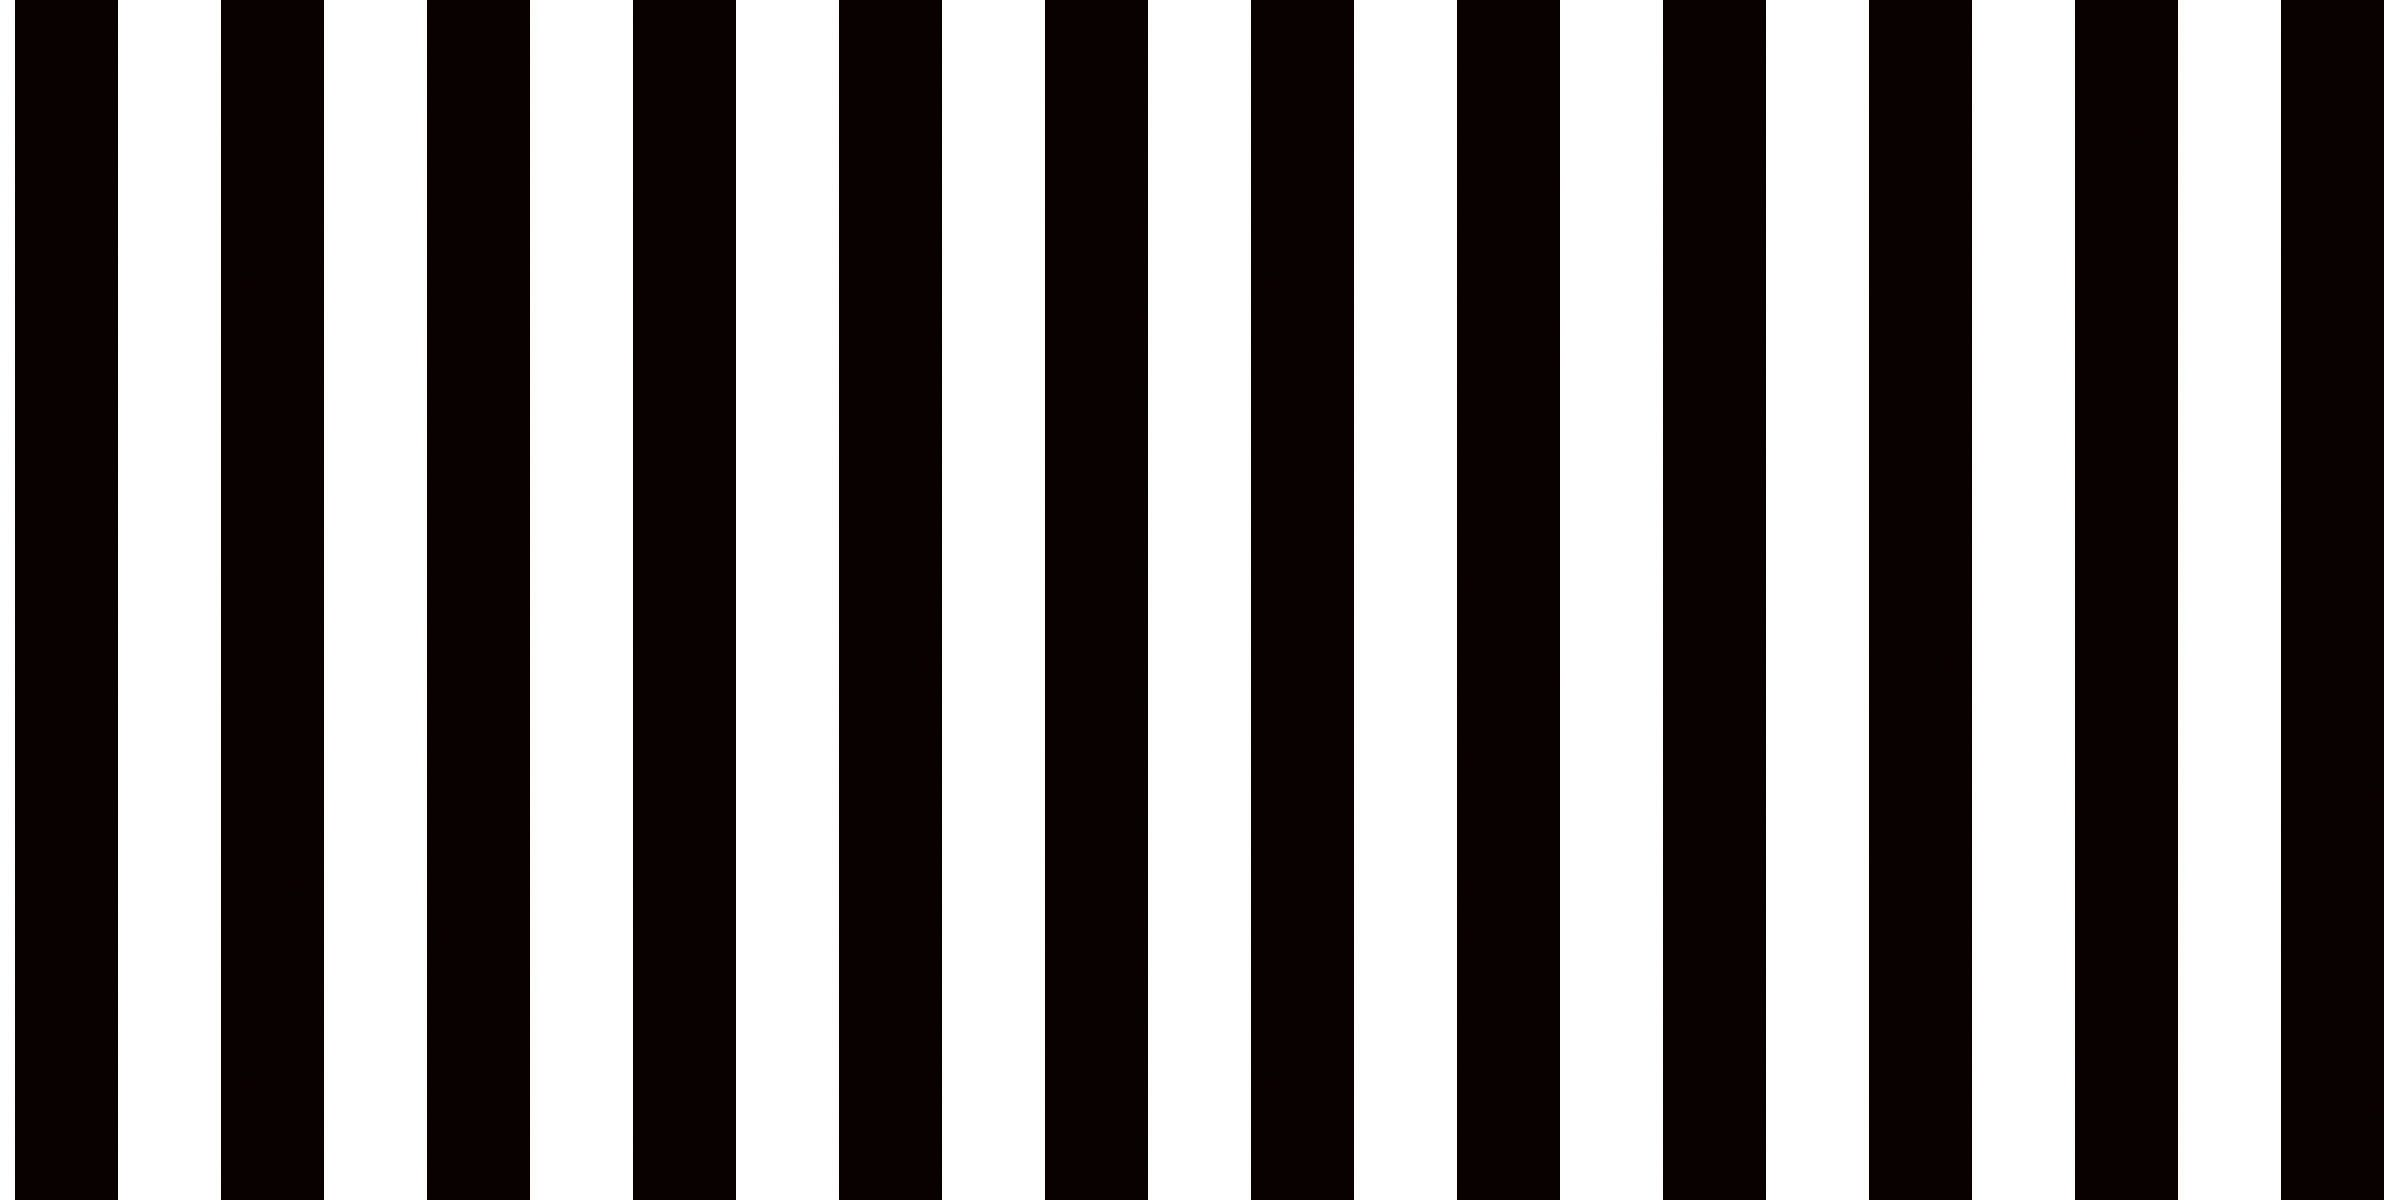 Black and White Stripes Wallpapers - Top Free Black and ...